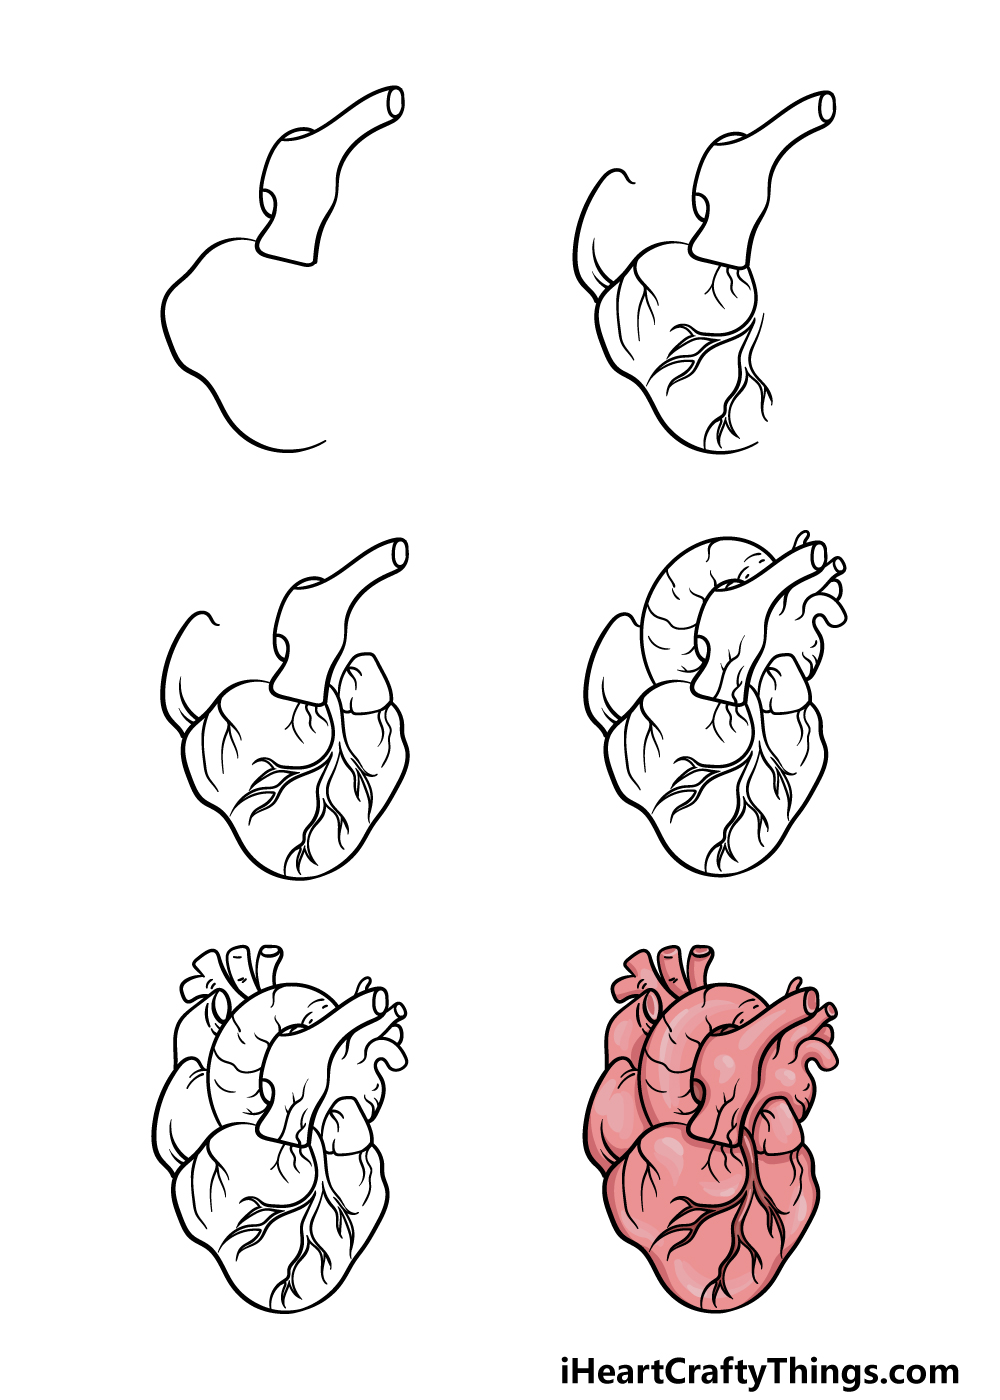 how to draw a human heart in 6 steps